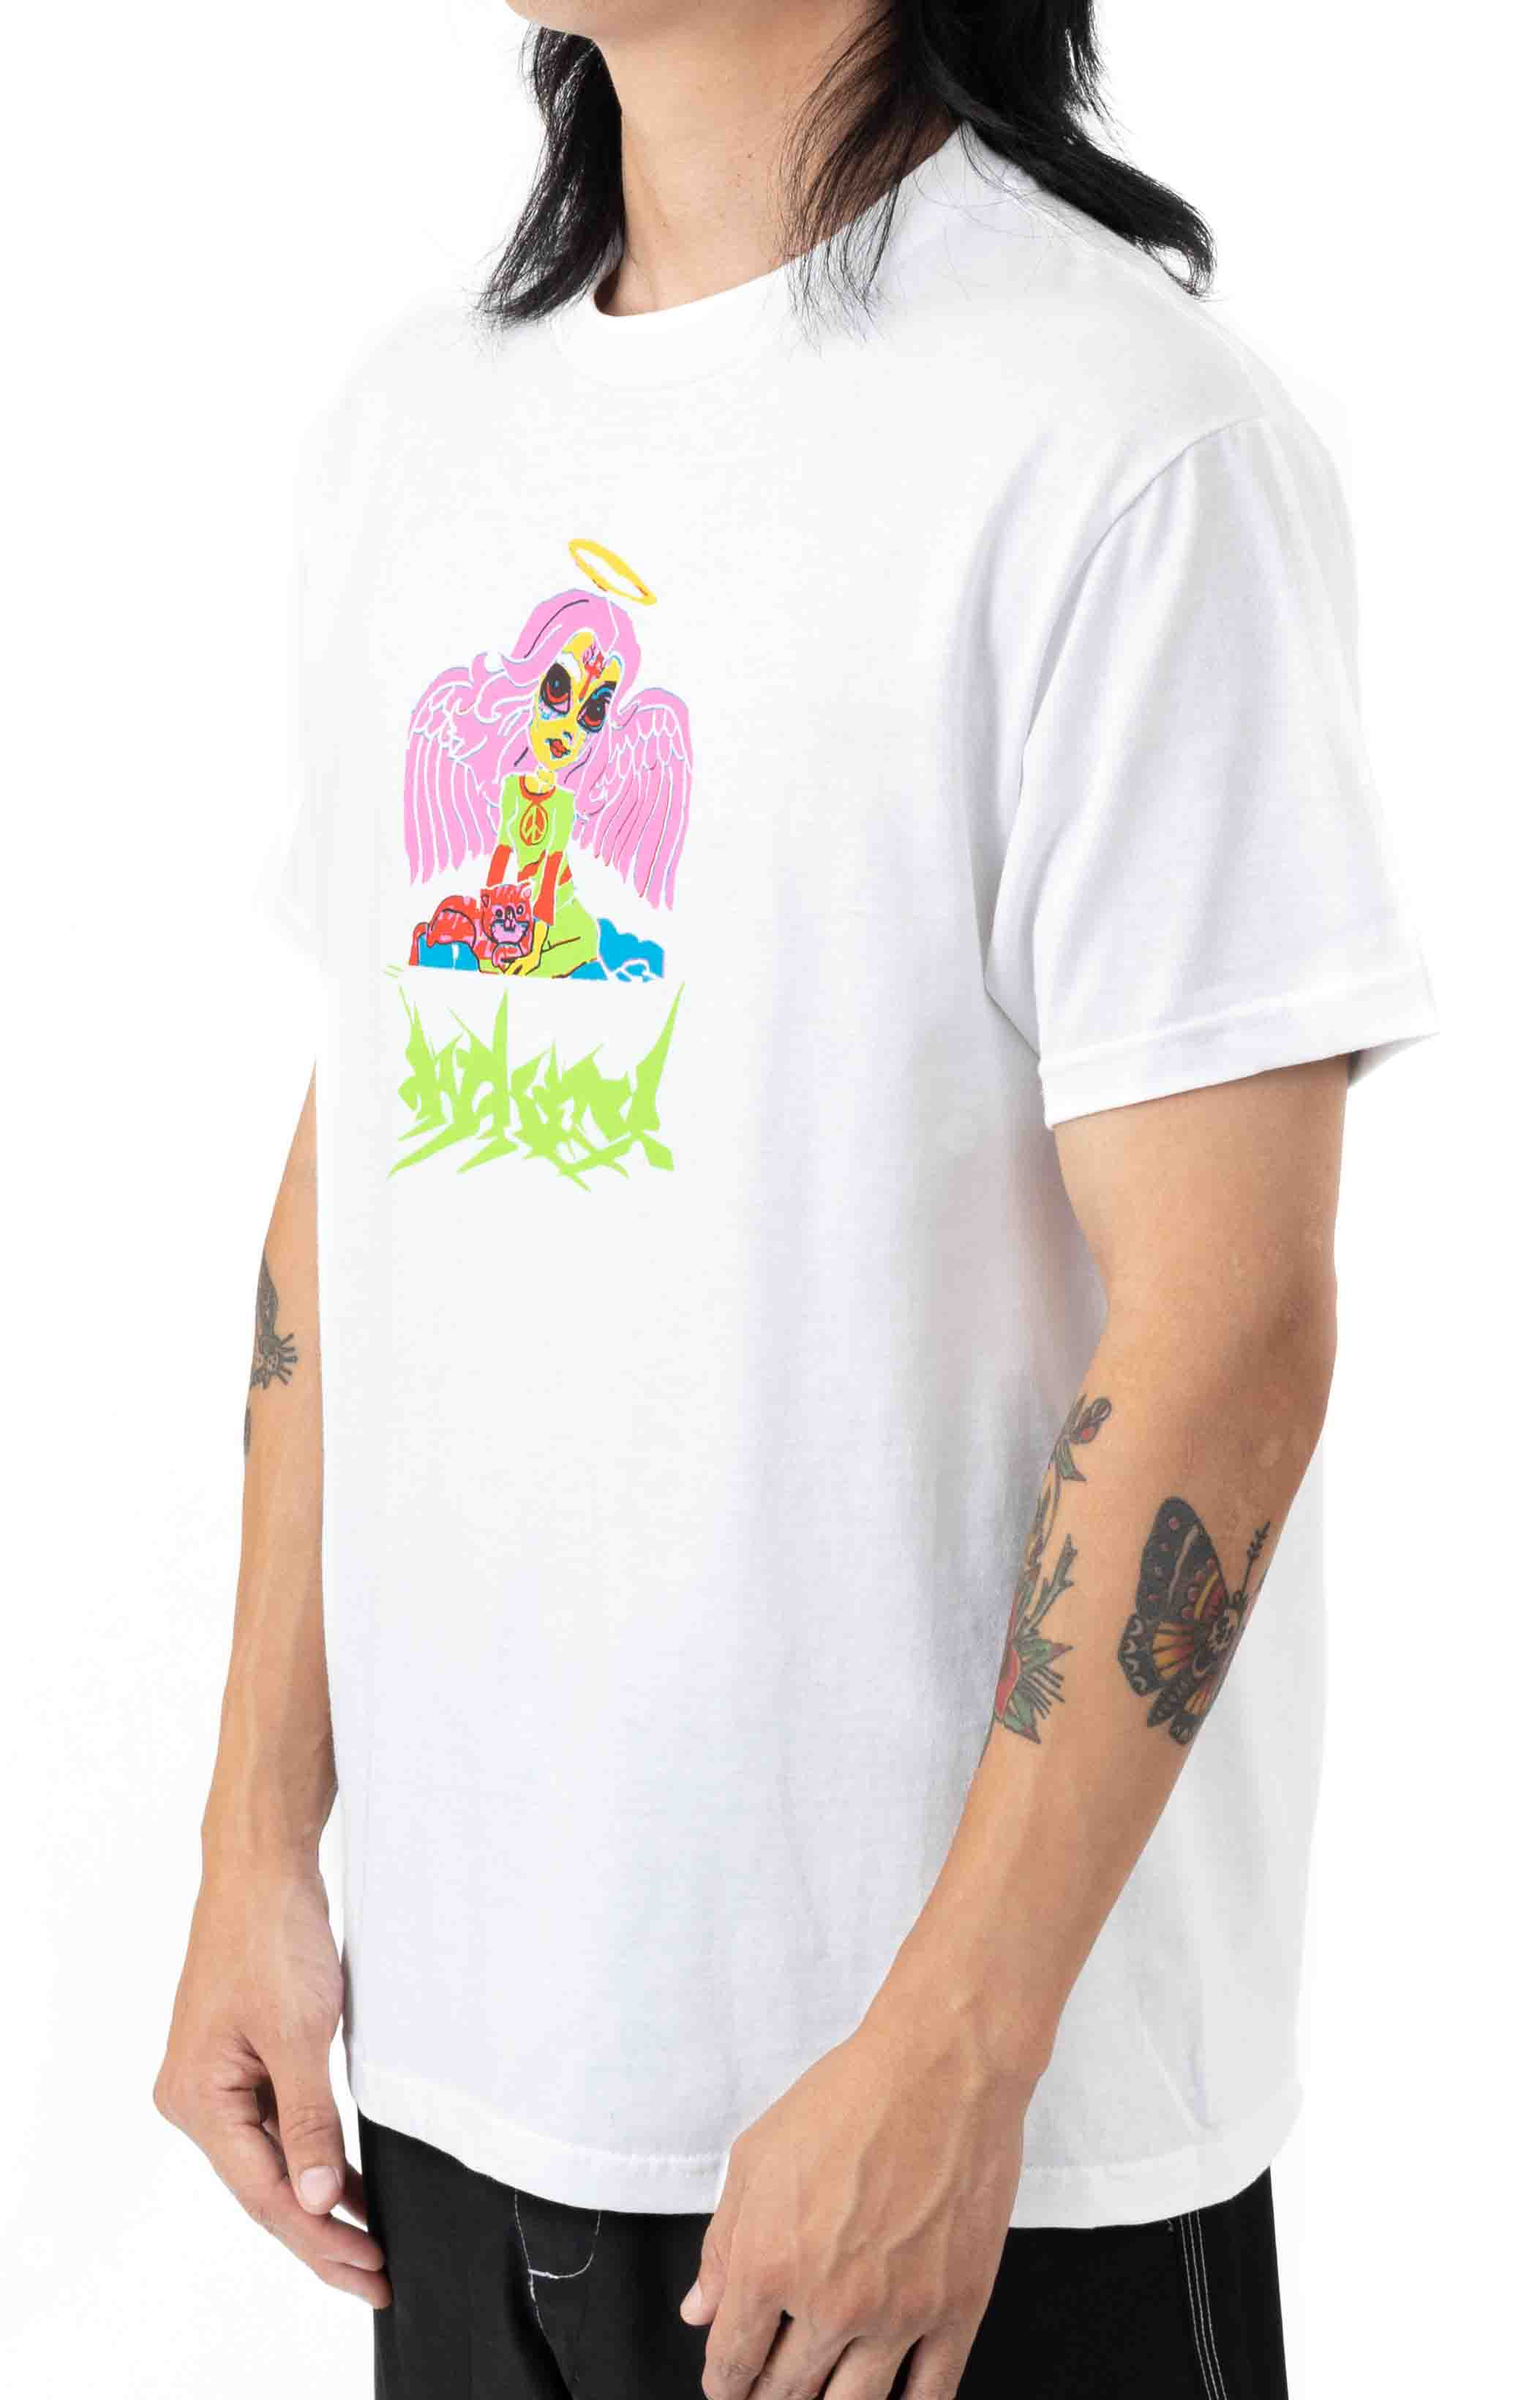 Rave Party T-Shirt - White  2